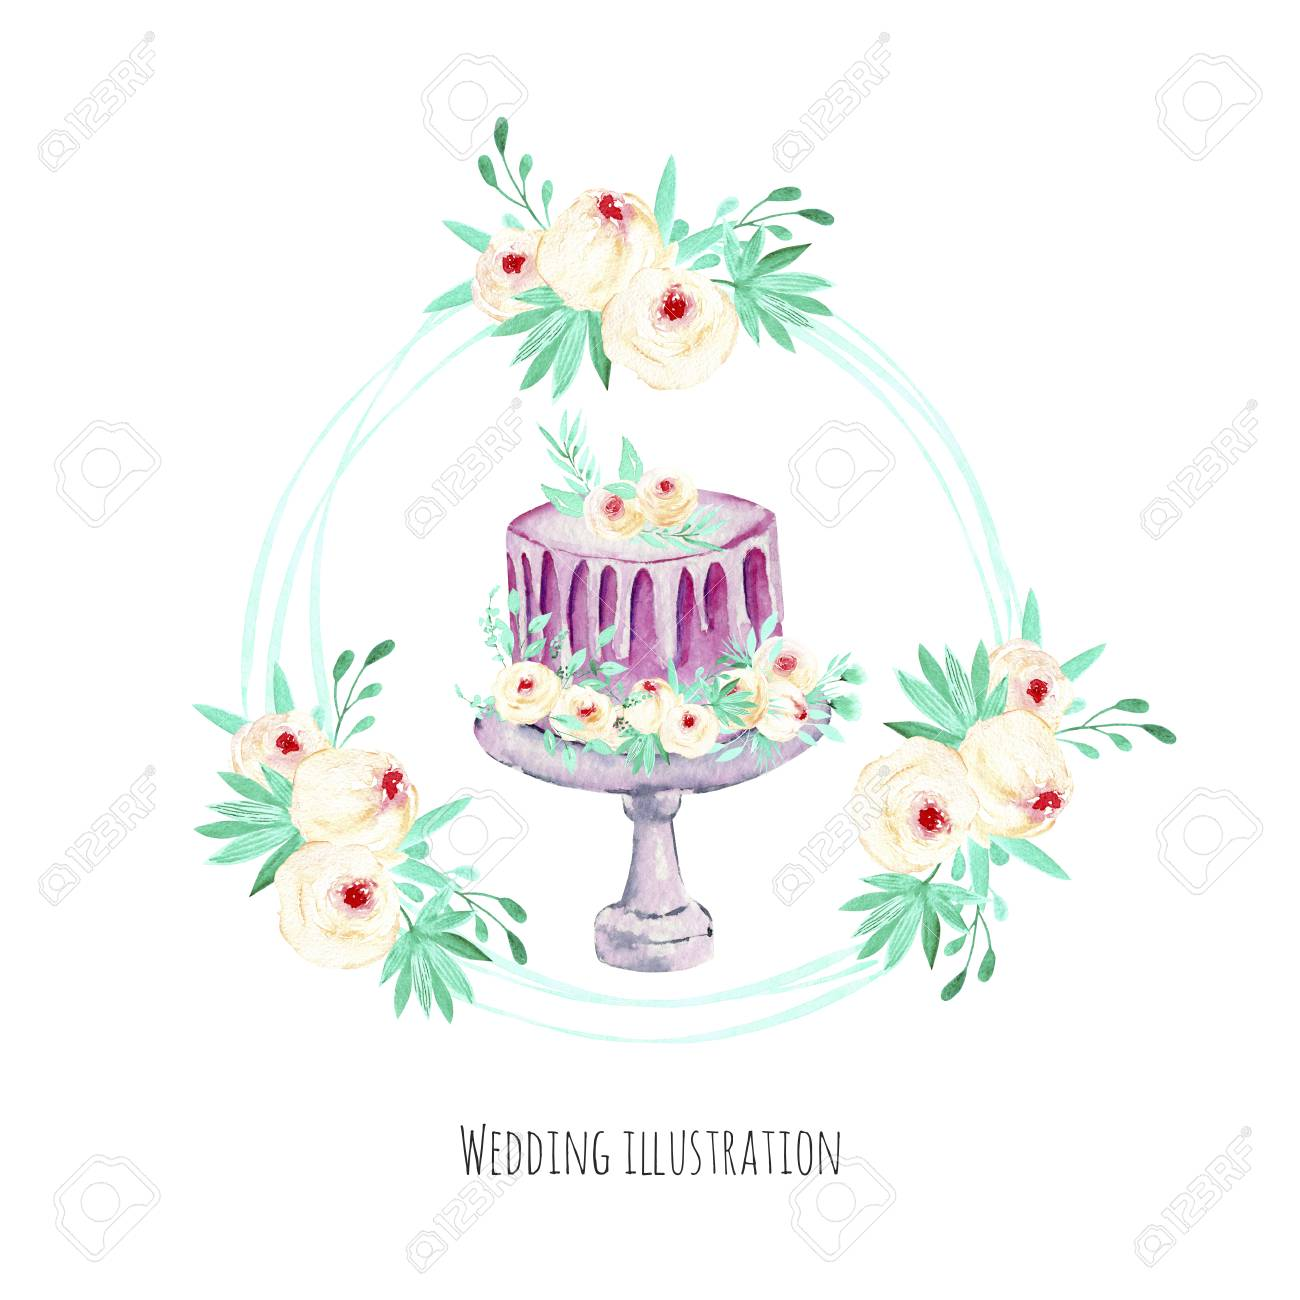 Watercolor Holiday Wedding Cake With Pink And Mint Floral Wreath ...